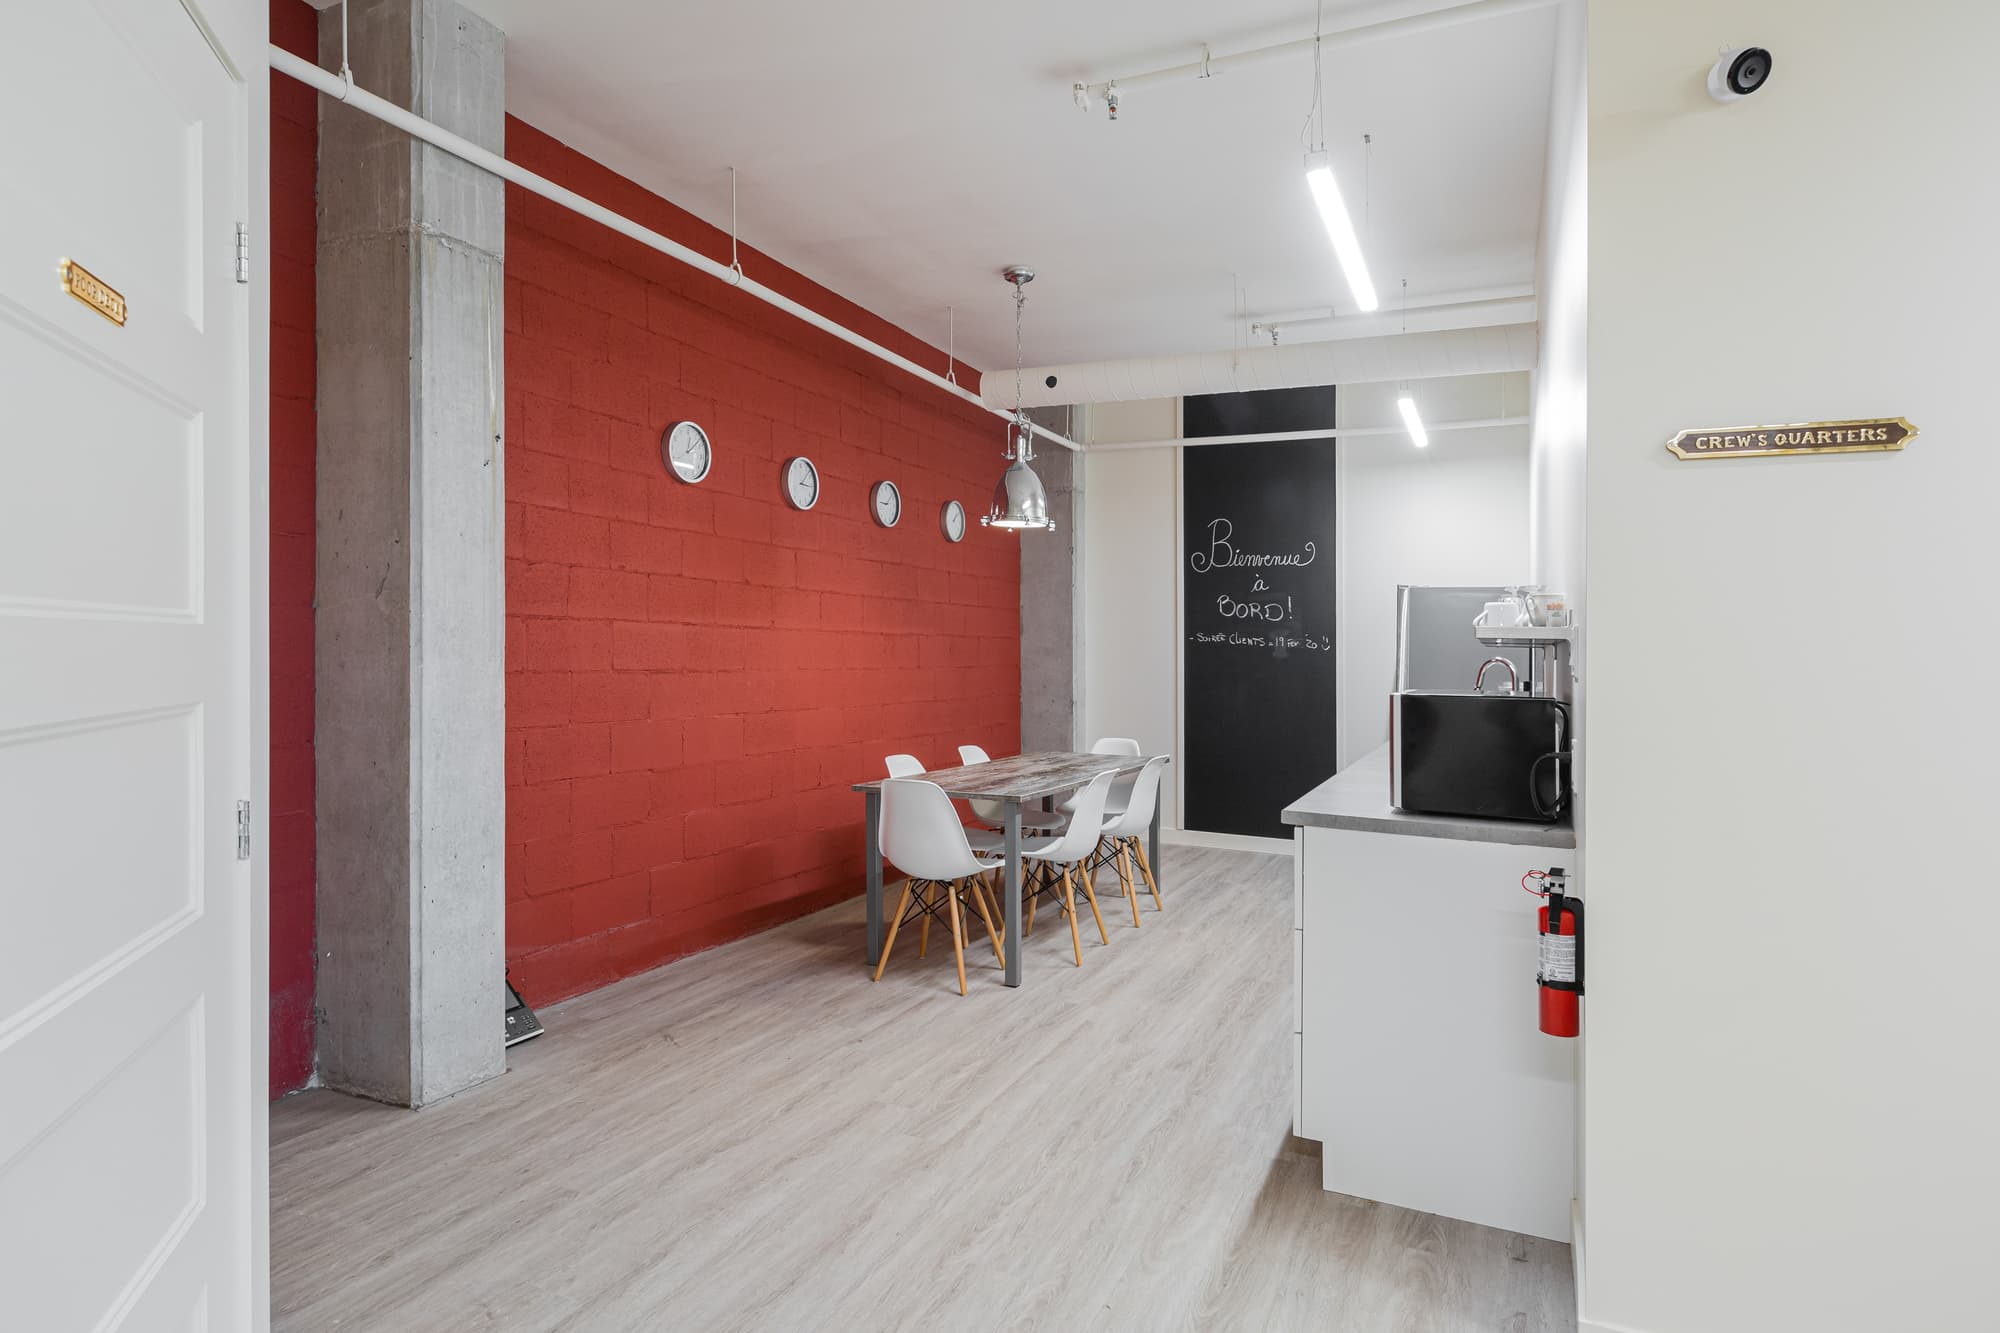 break room with red wall, portholes, table, chair, counter, etc.